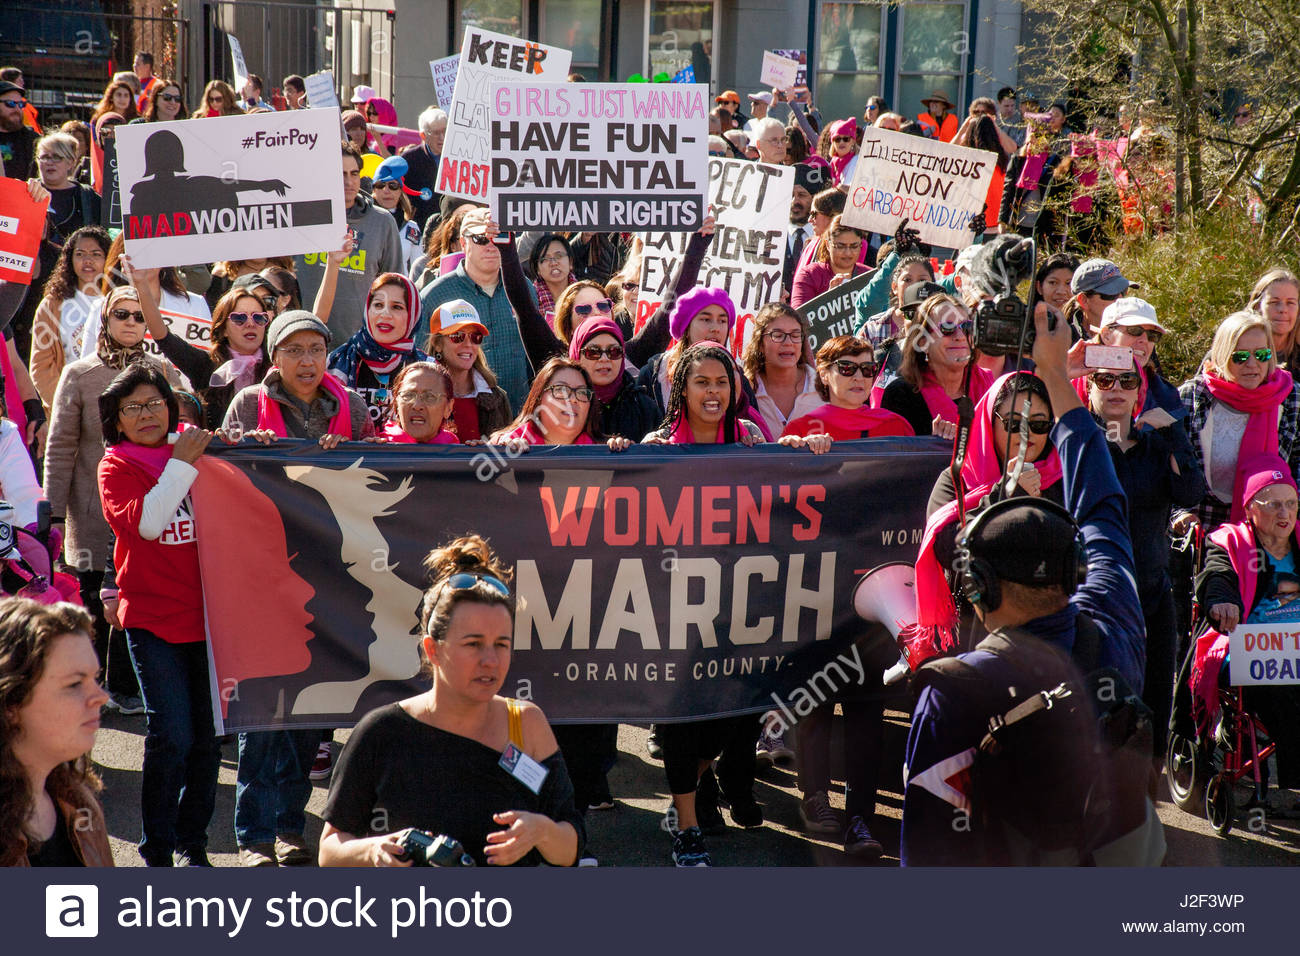 multiracial-women-lead-the-january-2017-anti-trump-womens-march-in-J2F3WP